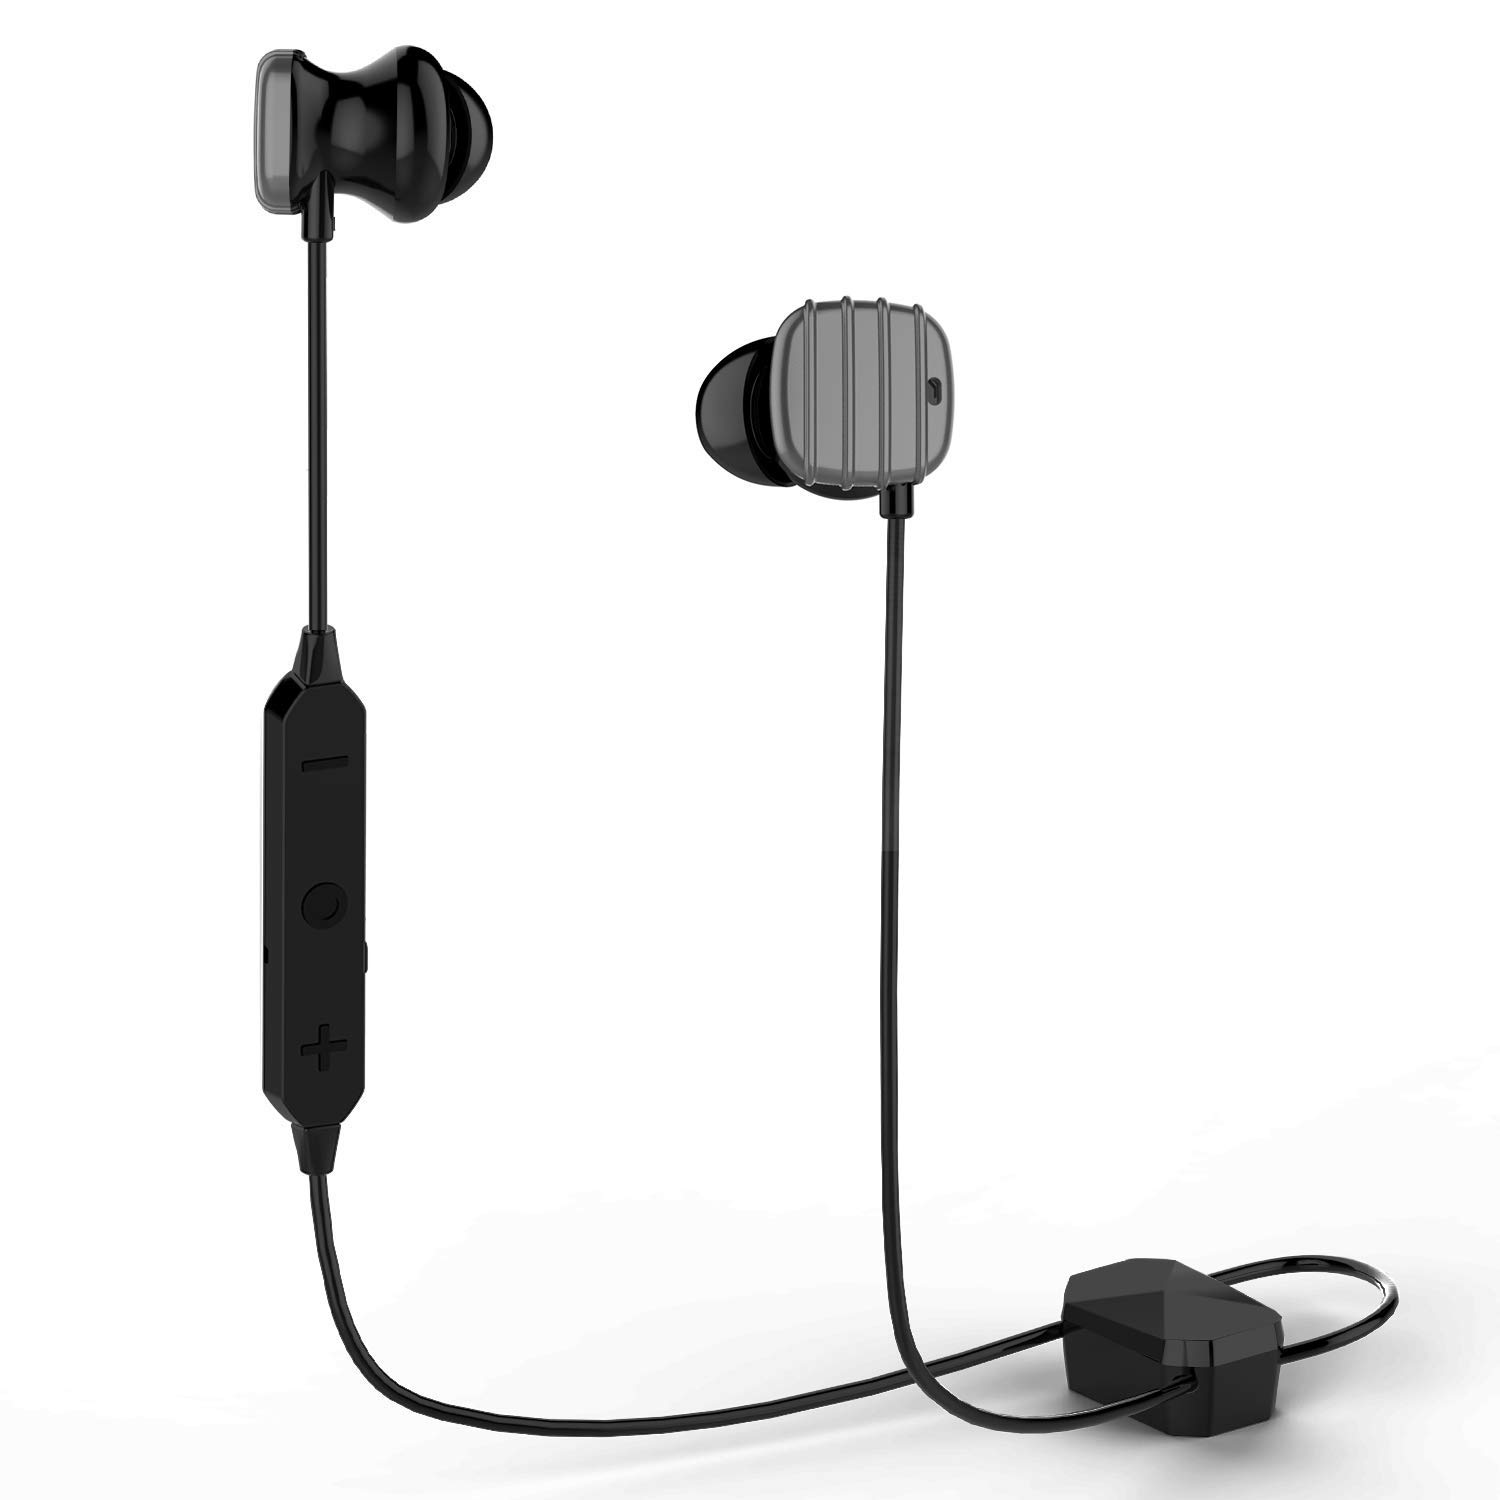 Bluetooth Headphones,COWIN HE8D Active Noise Cancelling Headphones Wireless Sports Earphones,HiFi Bass Stereo Sweatproof Earbuds for Workout,Gym,Runing,15 Hours Play Time-Light Gray